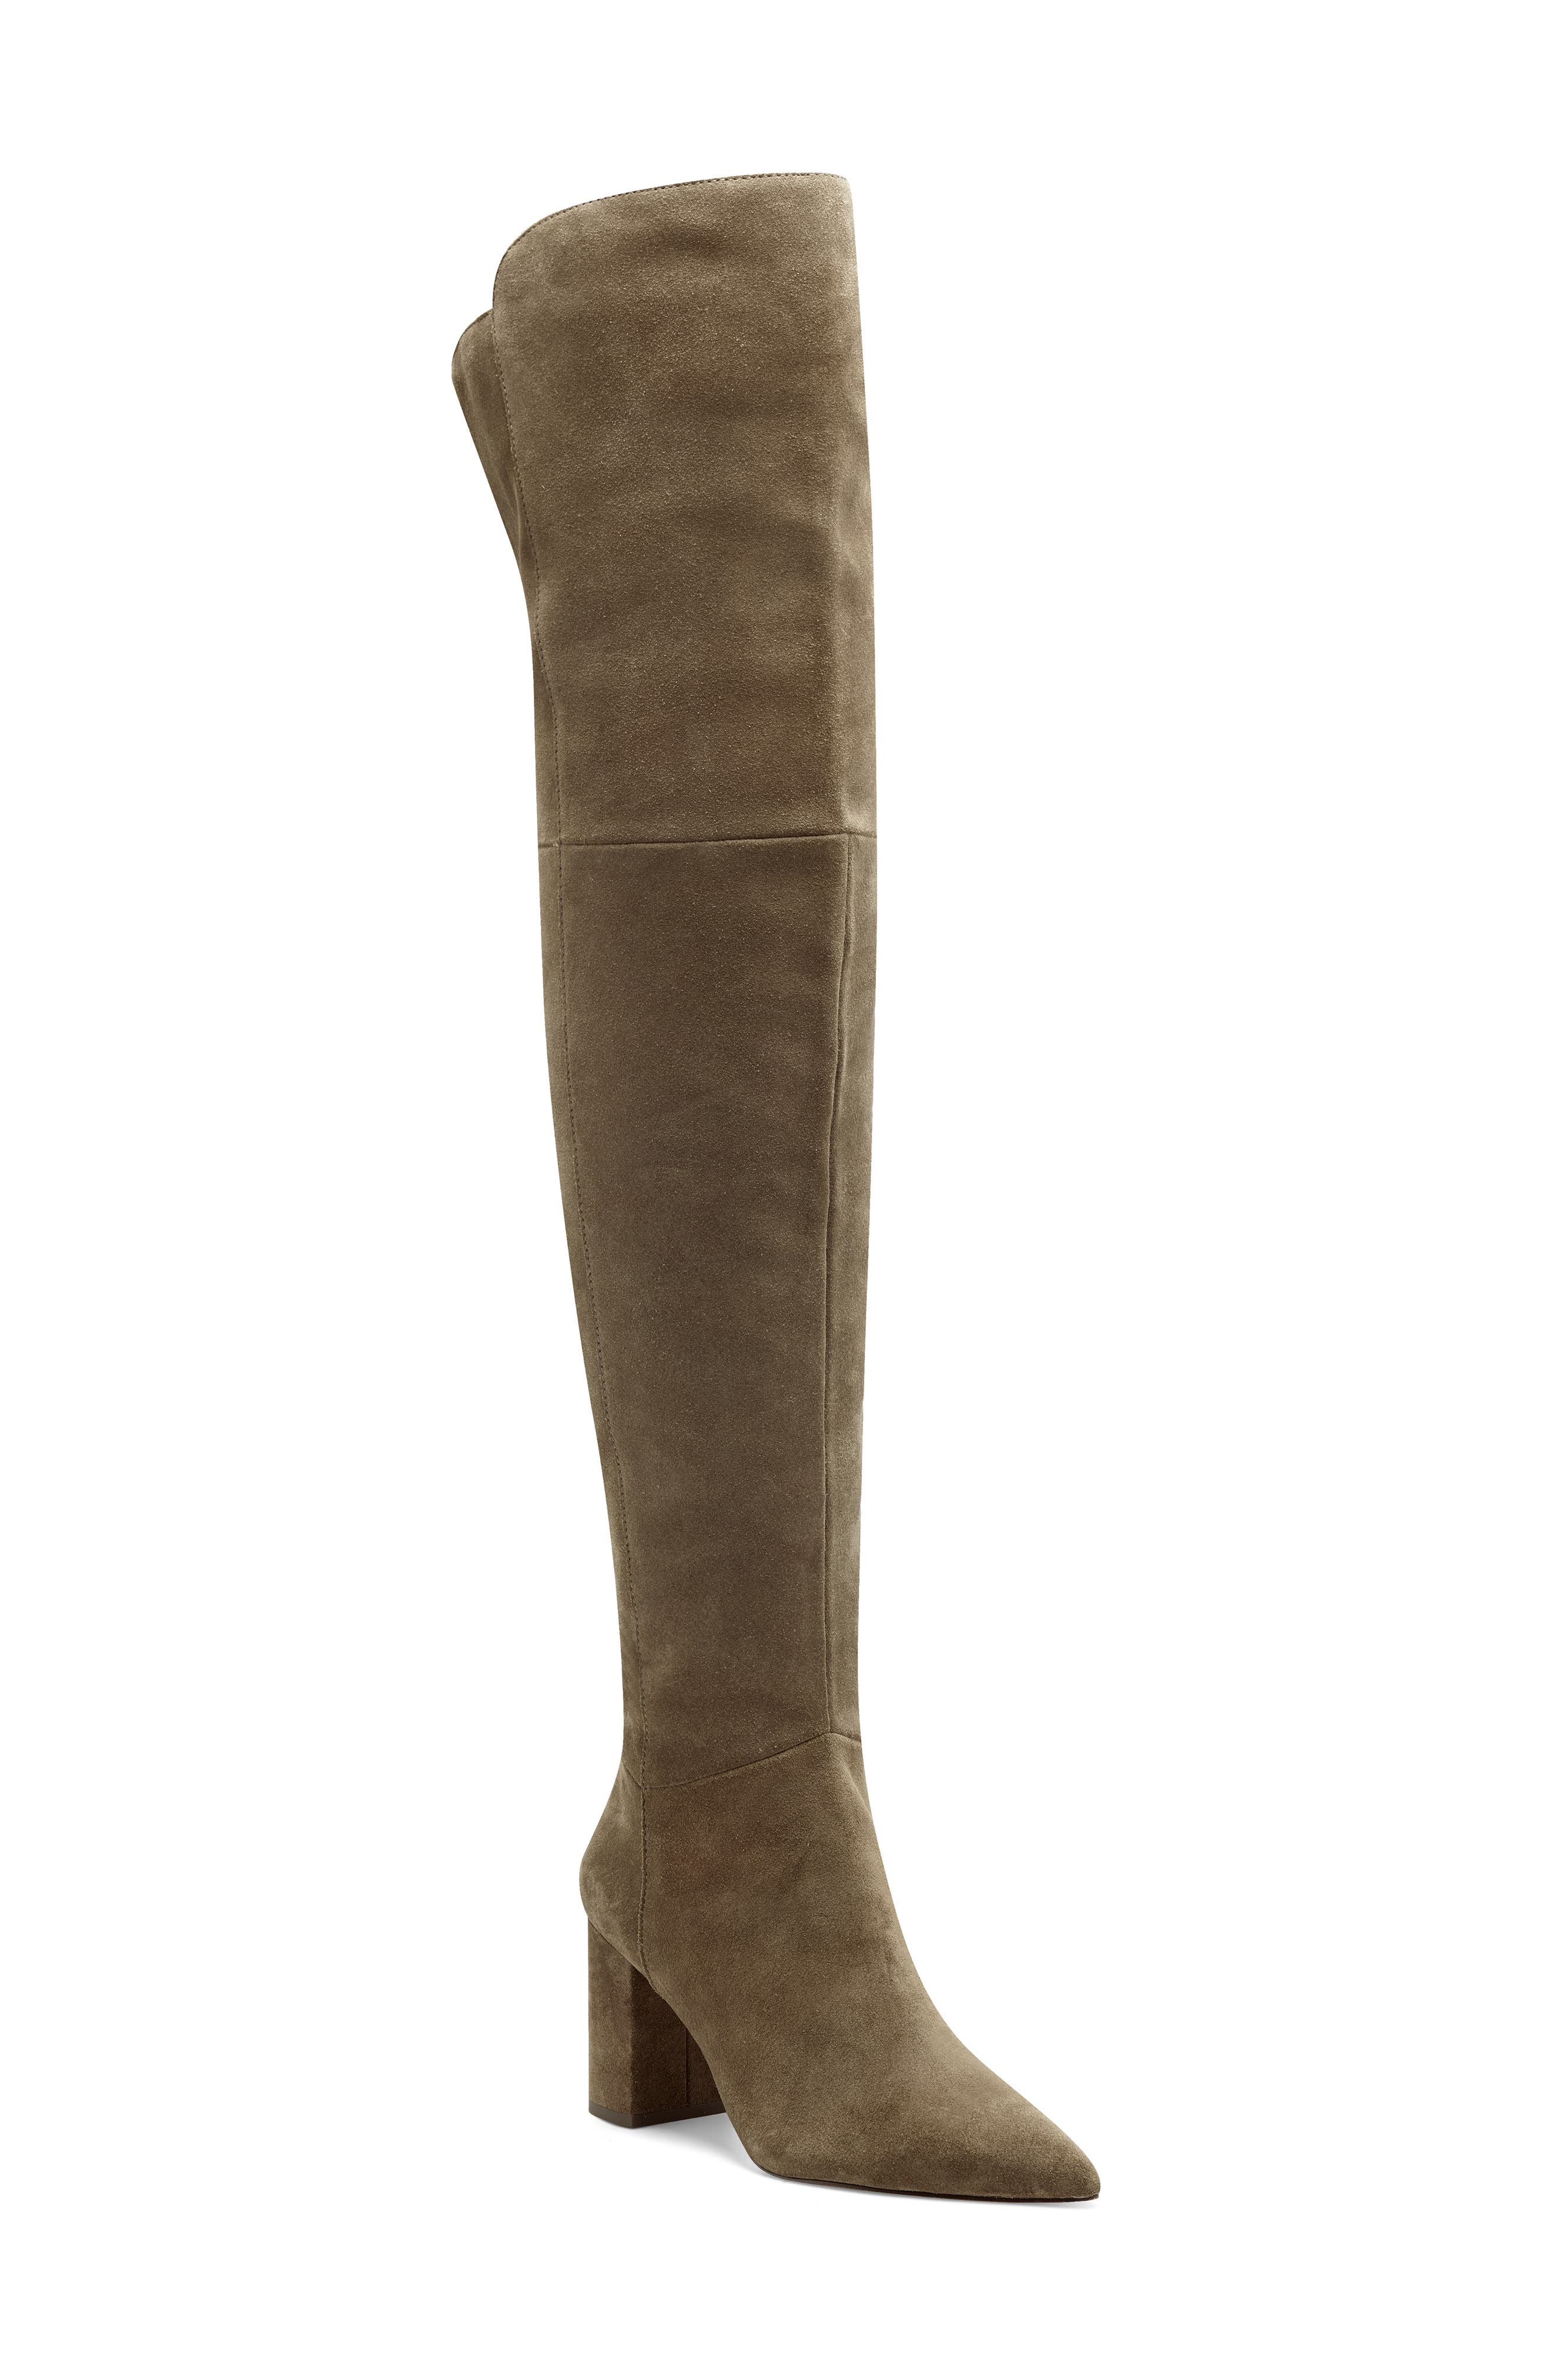 Clean seams and a back notch detail the sky-high shaft of this leg-lengthening boot styled with a pointy toe and covered block heel. Style Name: Louise Et Cie Wasi Over The Knee Boot (Women). Style Number: 6107706. Available in stores.